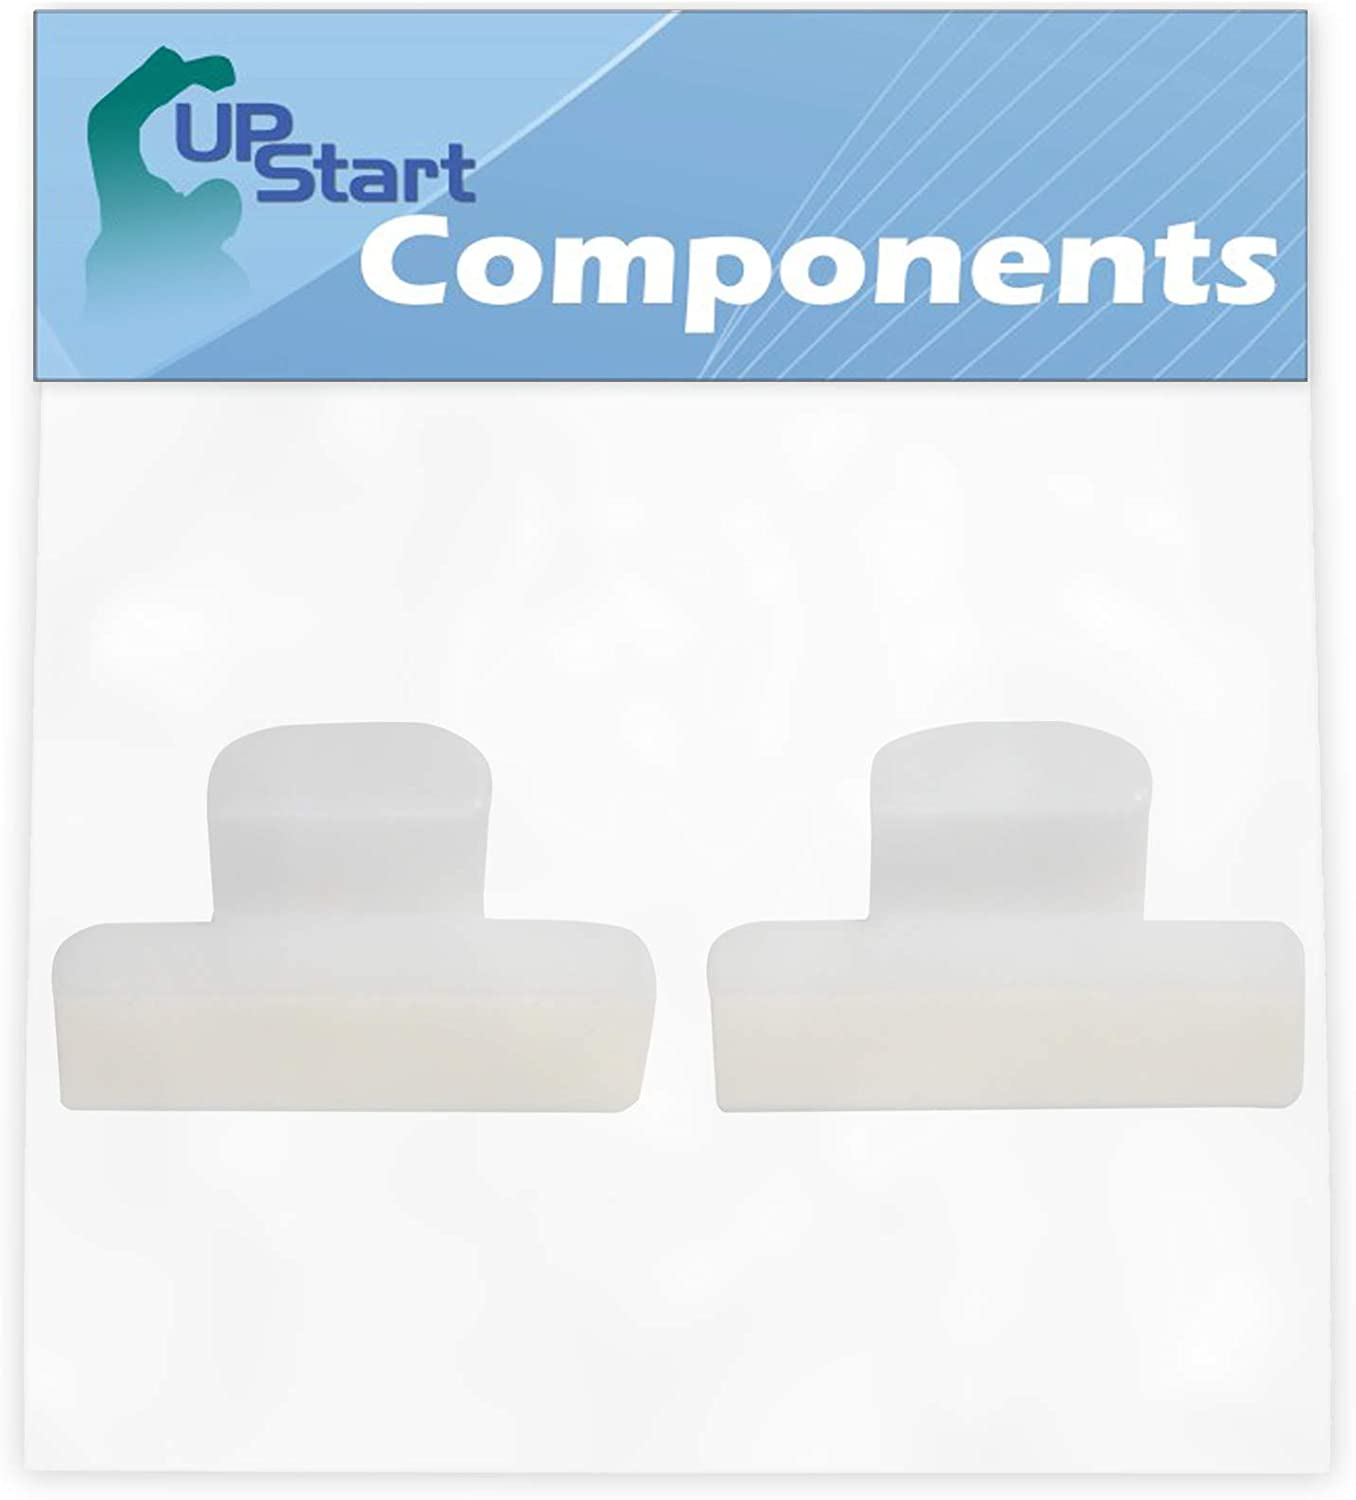 2 Pieces 154701001 Dishwasher Splash Shield Replacement for Frigidaire FBD2400KW4A - Compatible with 154701001 Splash Shield Kit